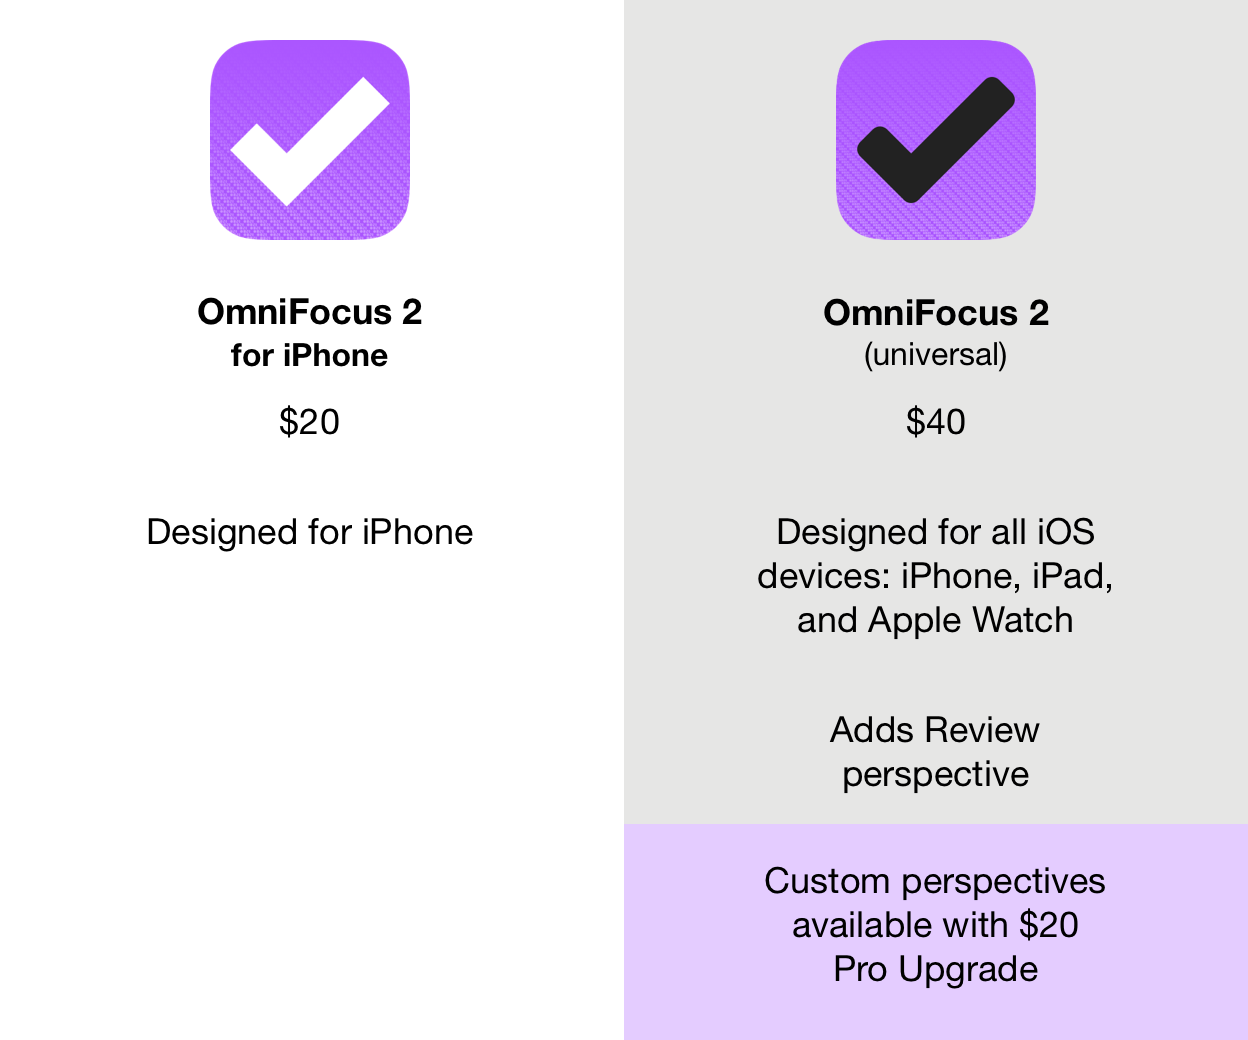 Different editions of OmniFocus for iPhone and iOS